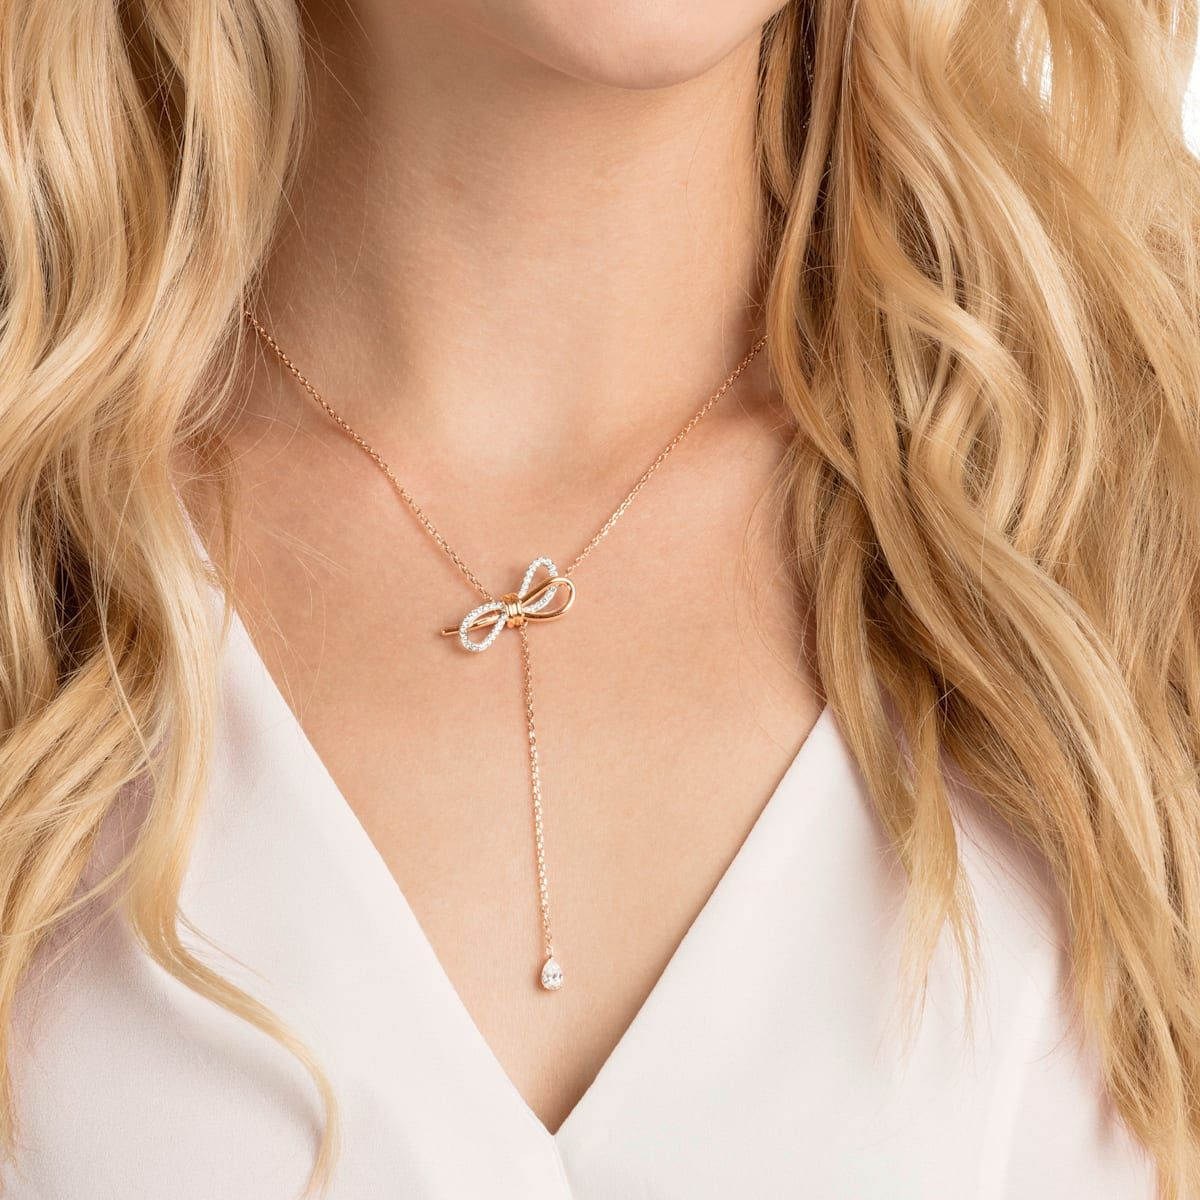 Mixed metal gold and rose gold mixed metal boho chain necklace with clear crystal details